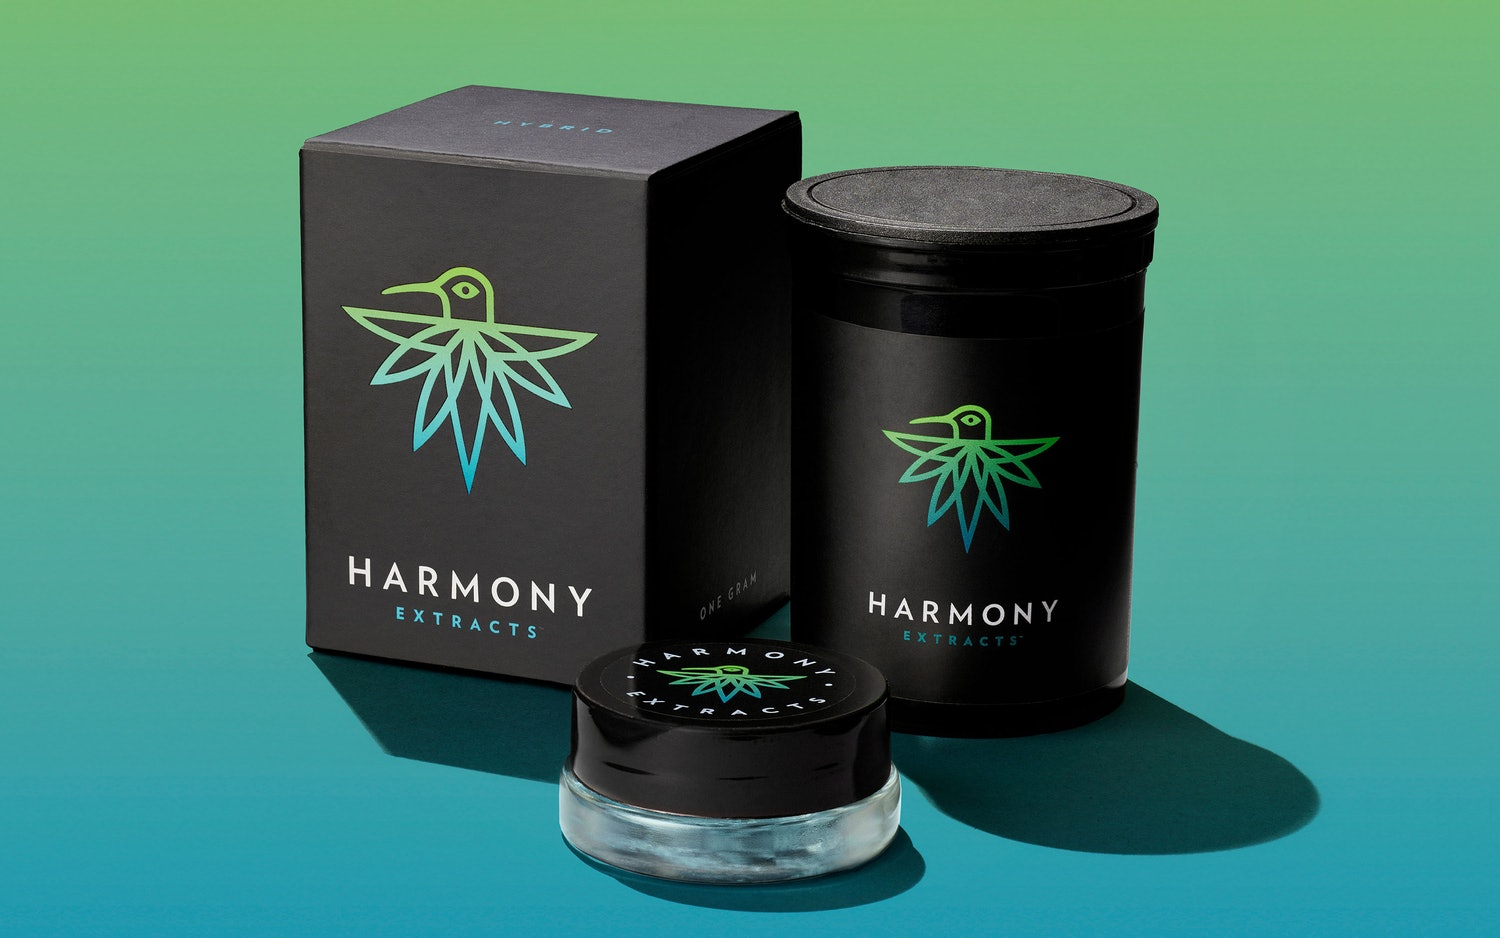 Harmony Extracts Brand Identity Spotlight